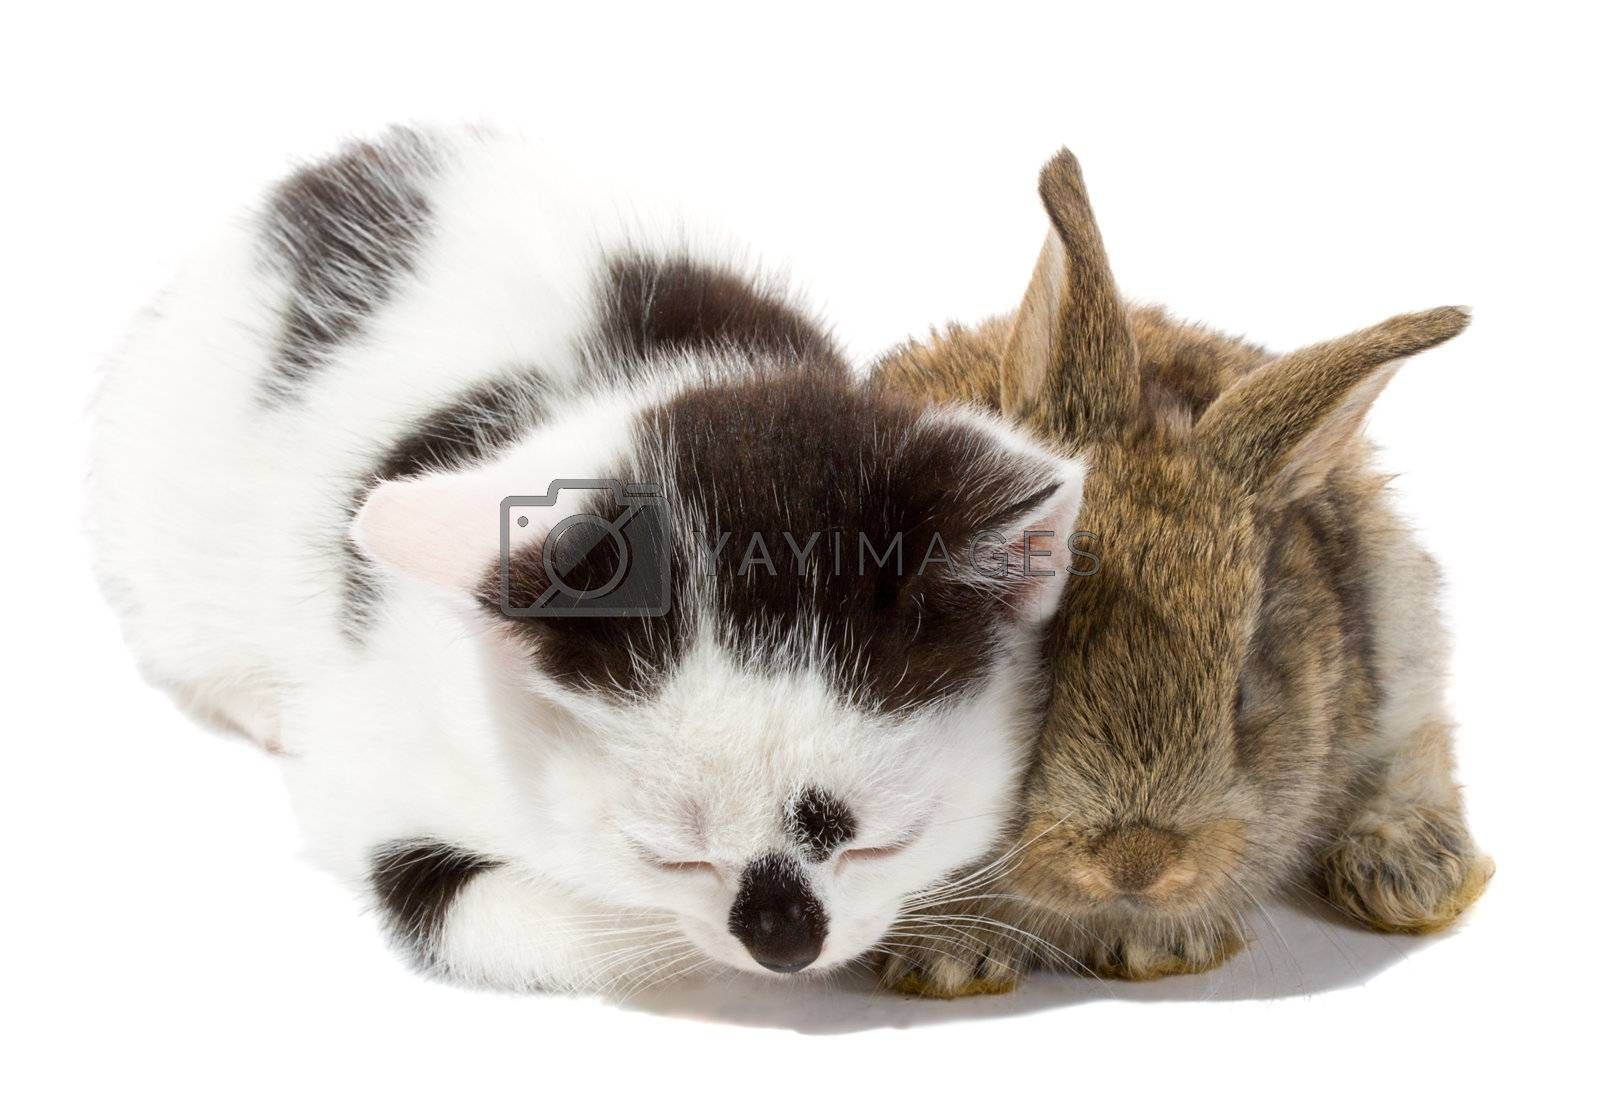 close-up kitten and bunny, isolated on white